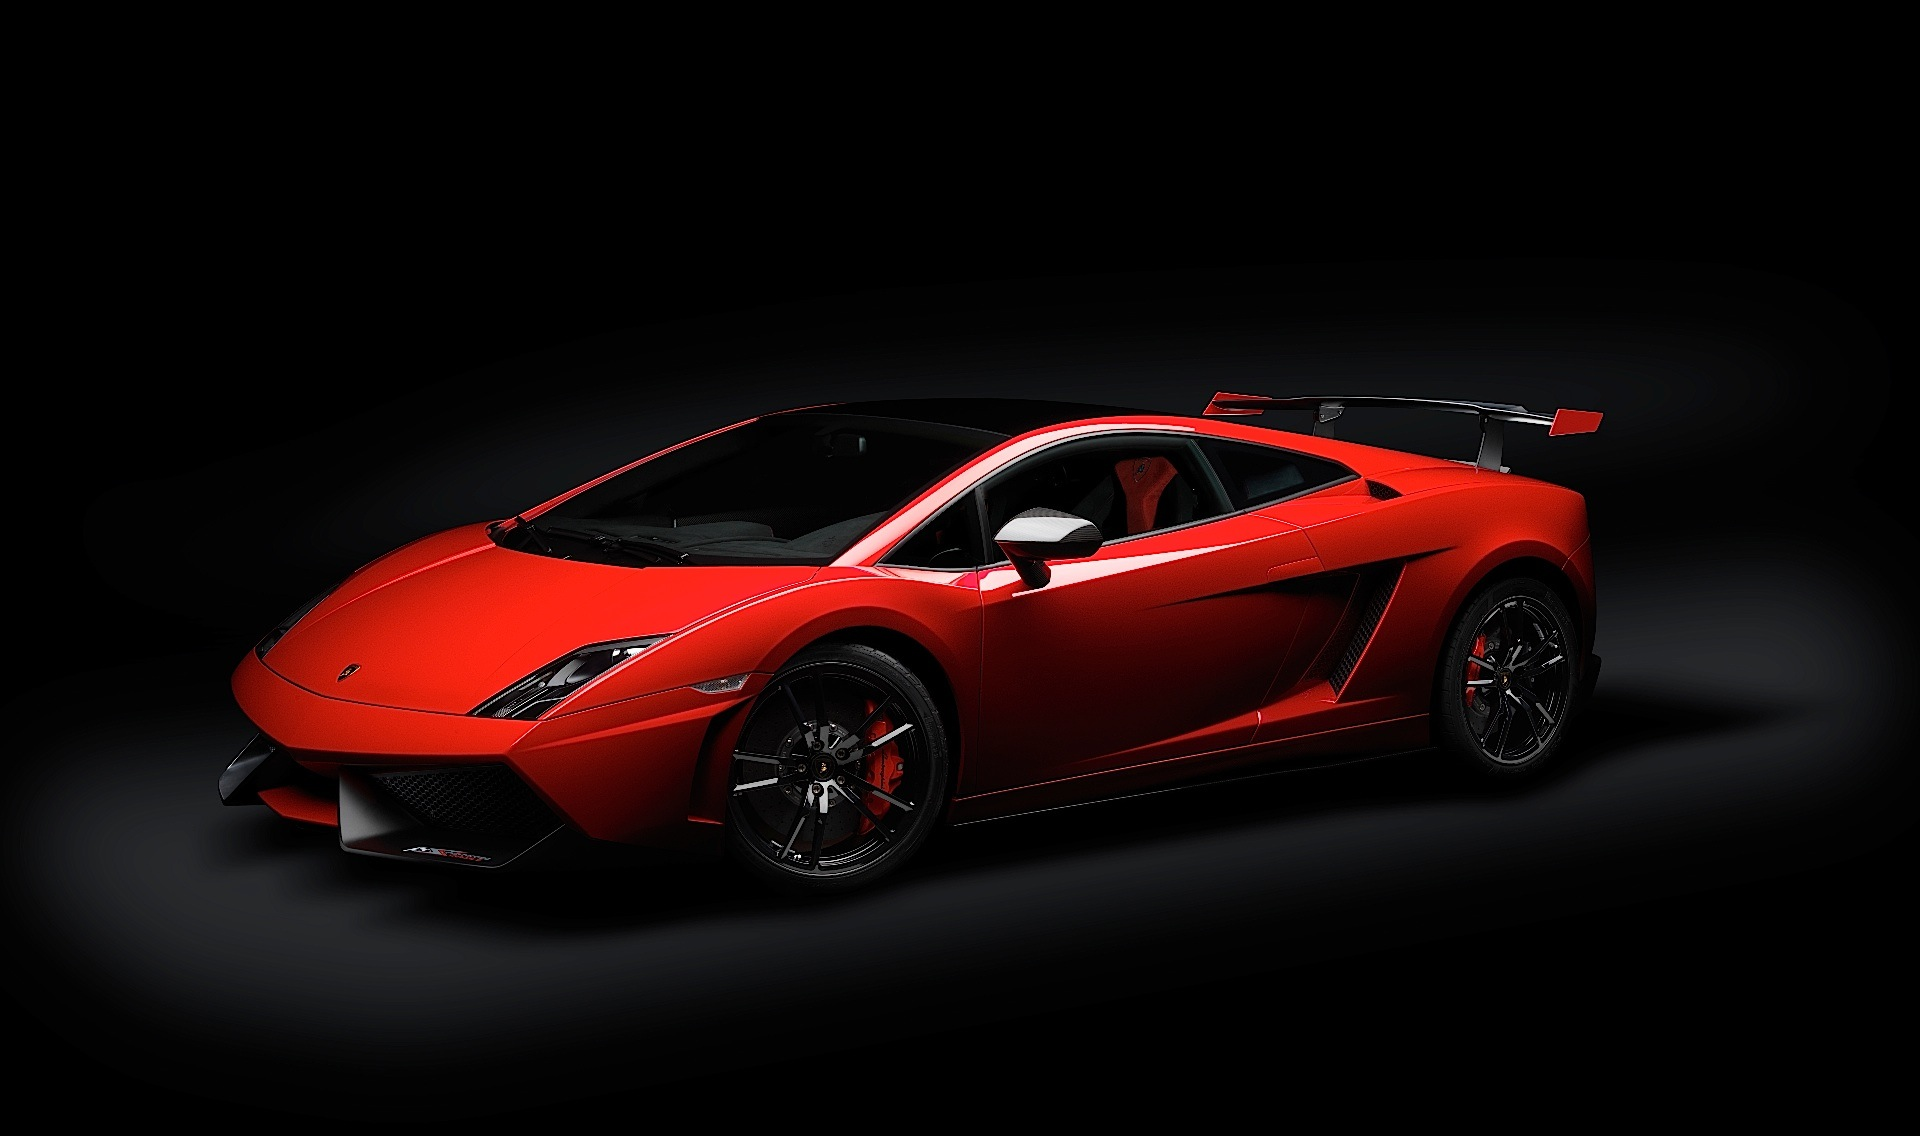 lamborghini gallardo - photo #49